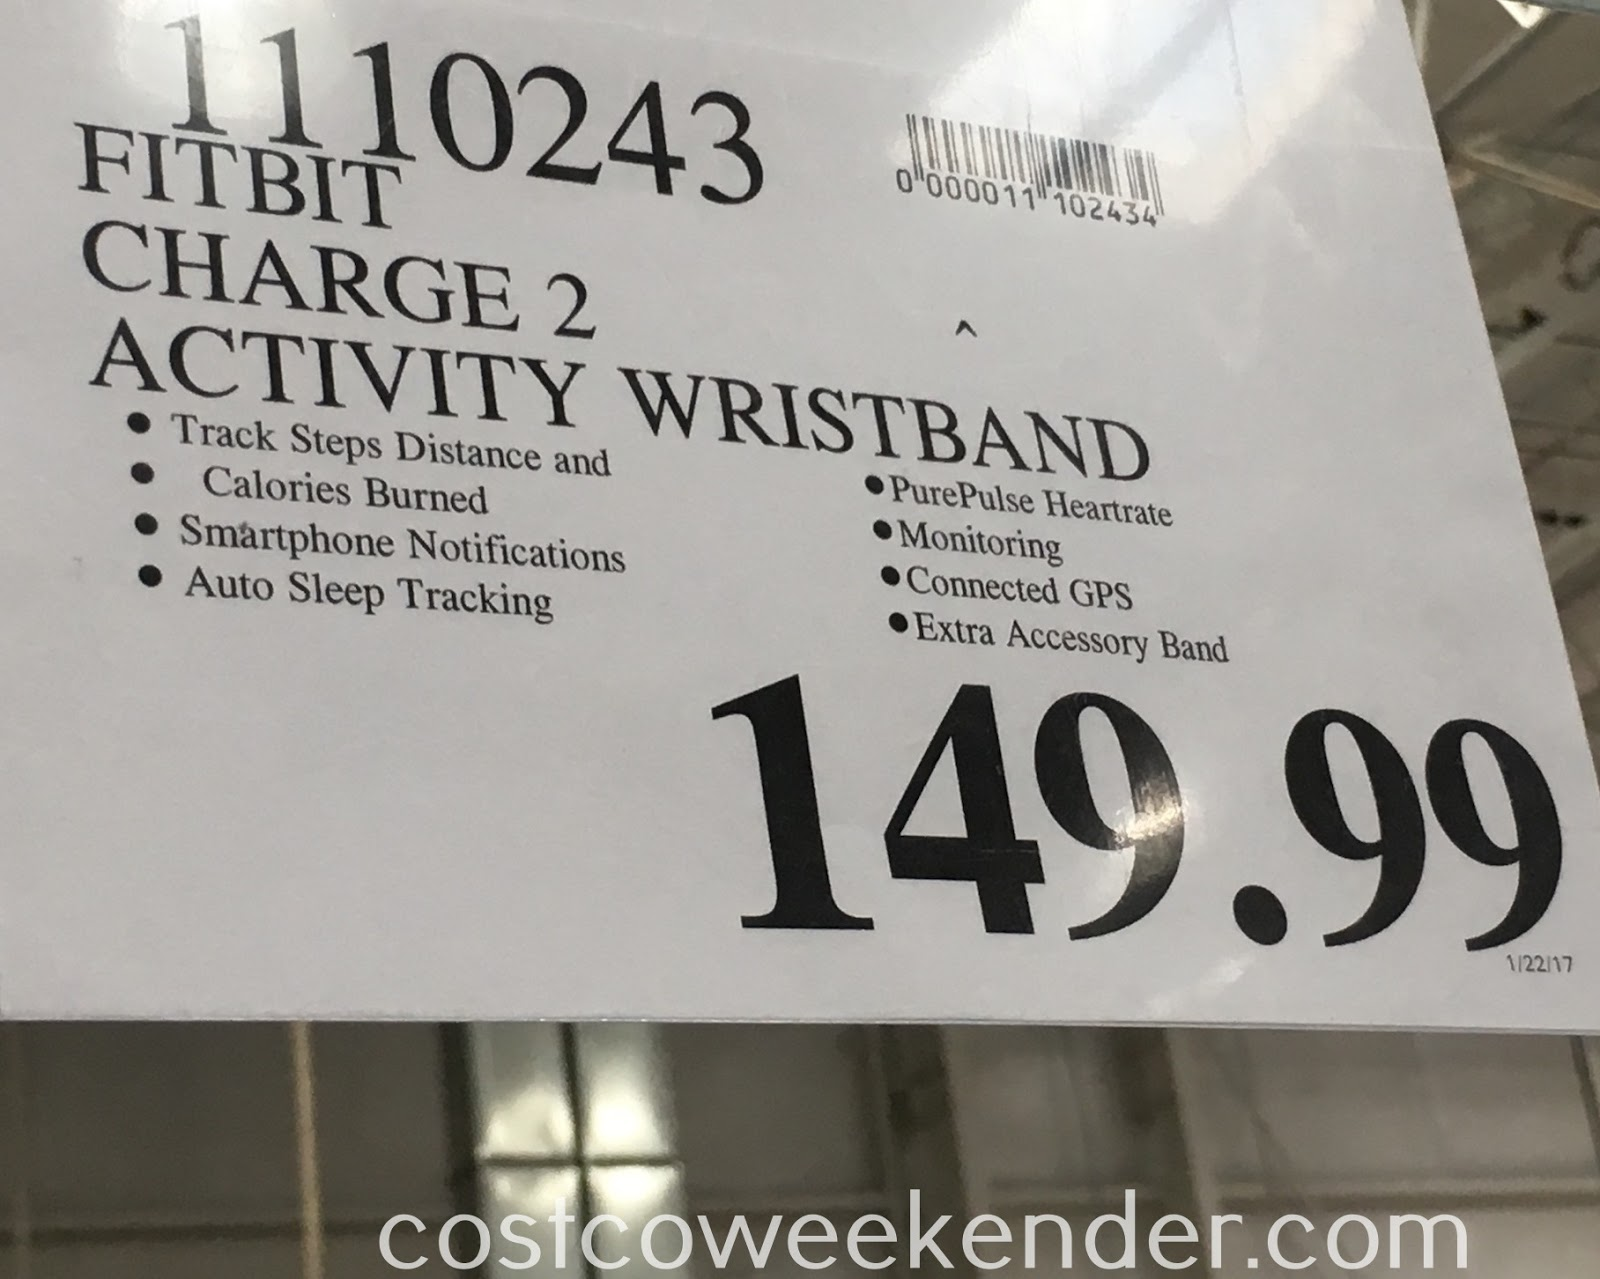 Deal for the Fitbit Charge 2 Heart Rate + Fitness Wristband at Costco